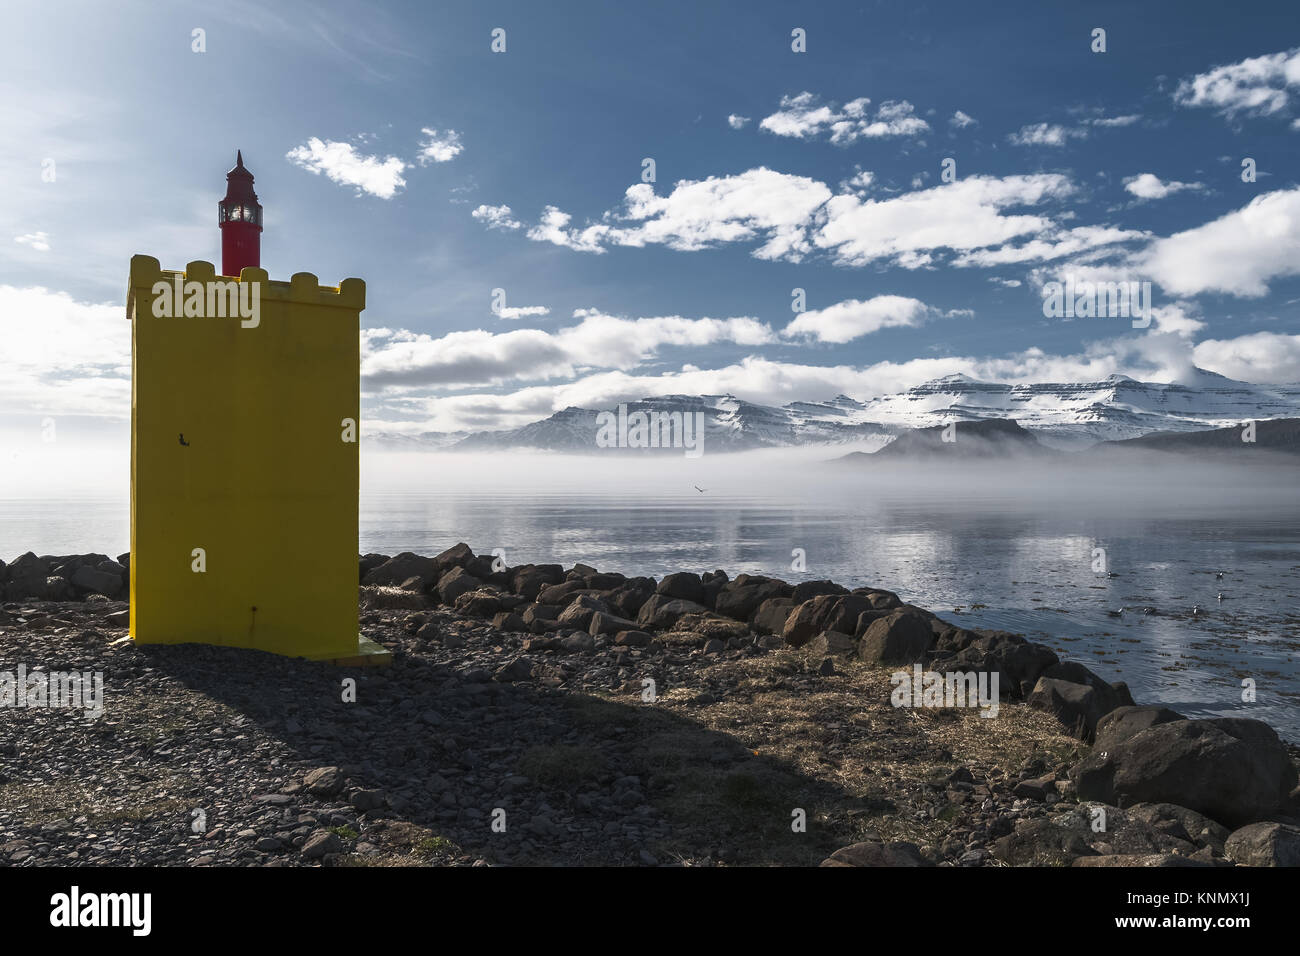 Eskifjordor Lighthouse in the East Fjords, Iceland - Stock Image